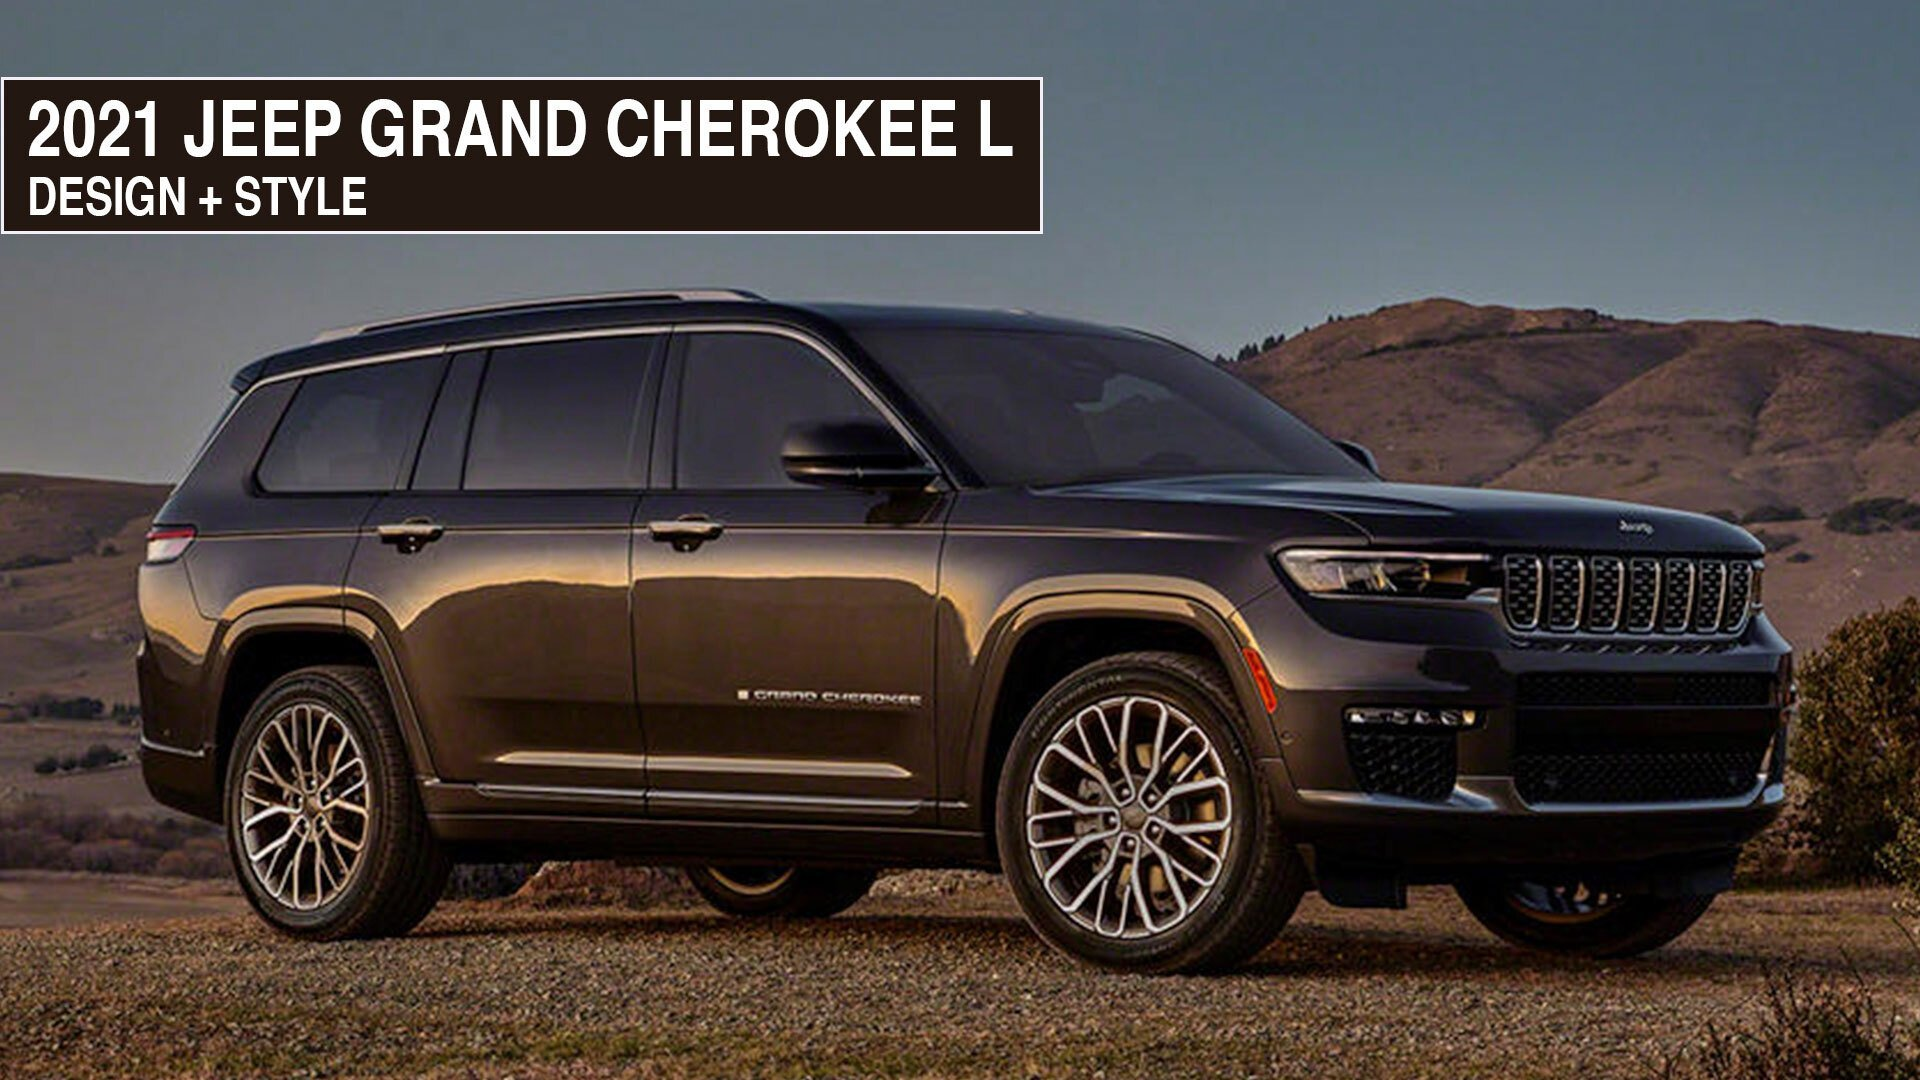 Design and style features of the new Jeep Grand Cherokee L placed in a desert.